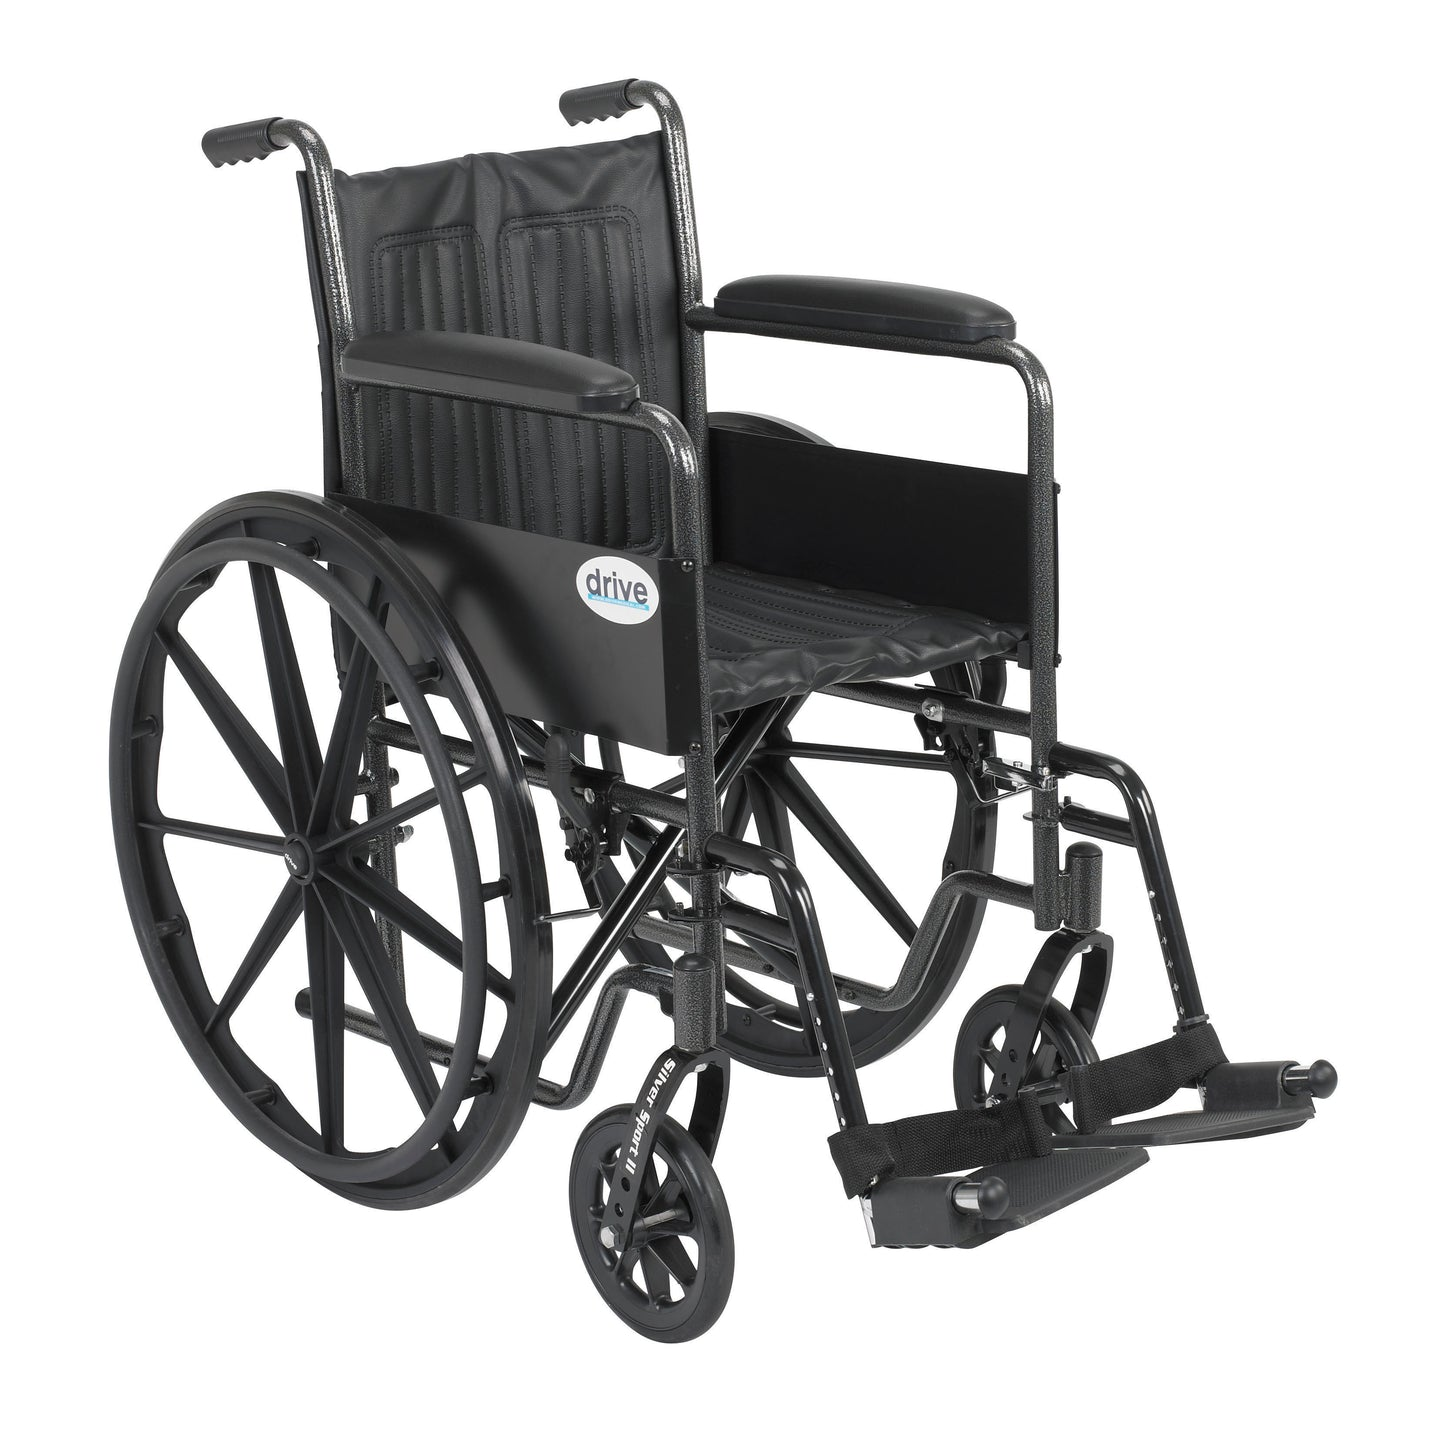 Drive Silver Sport 2 Wheelchair- Non Removable Fixed Arms- Swing away Footrests- 18